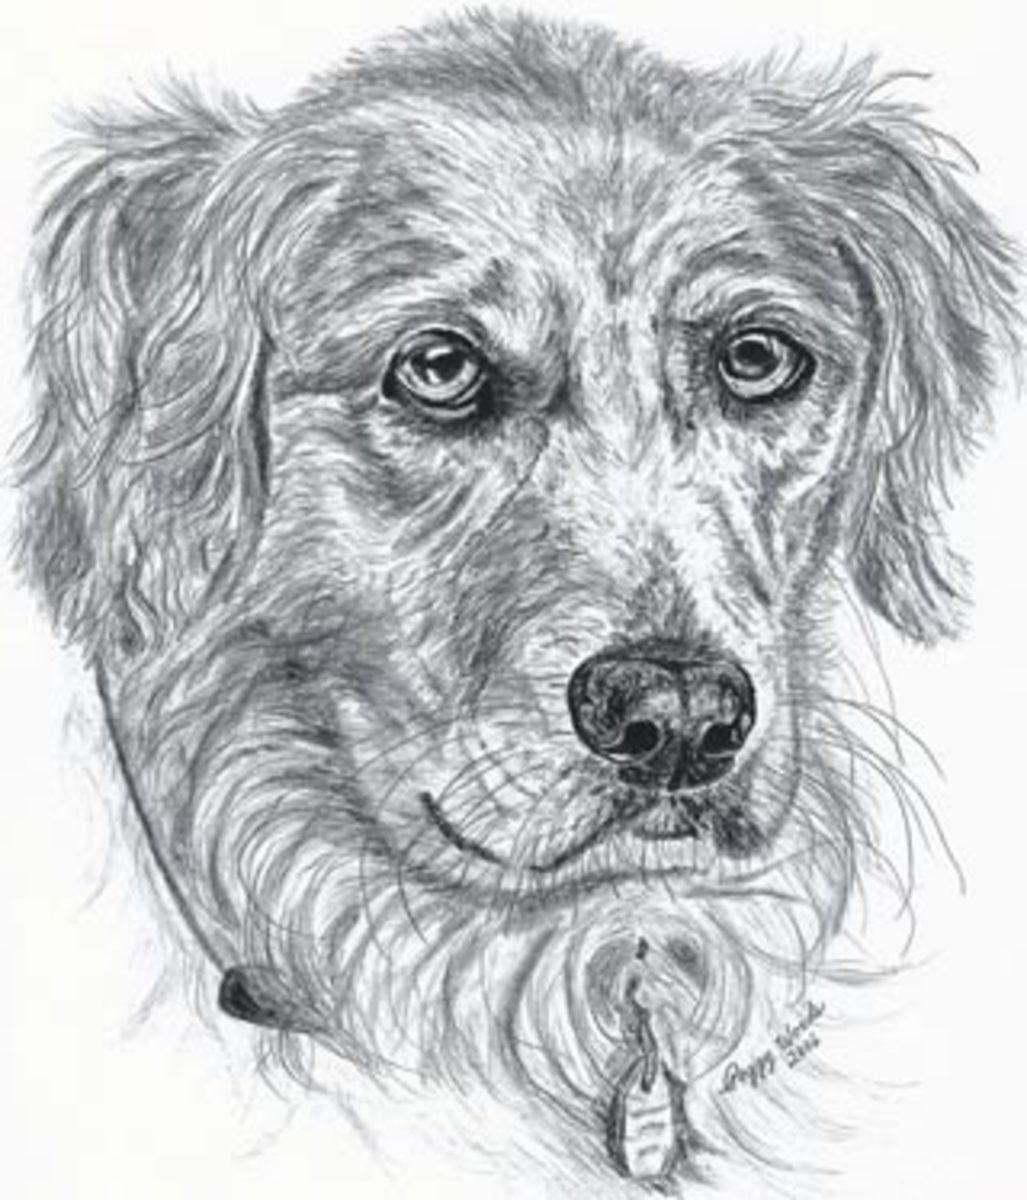 My original pencil drawing of a Golden Retriever.  Who wouldn't love that face?